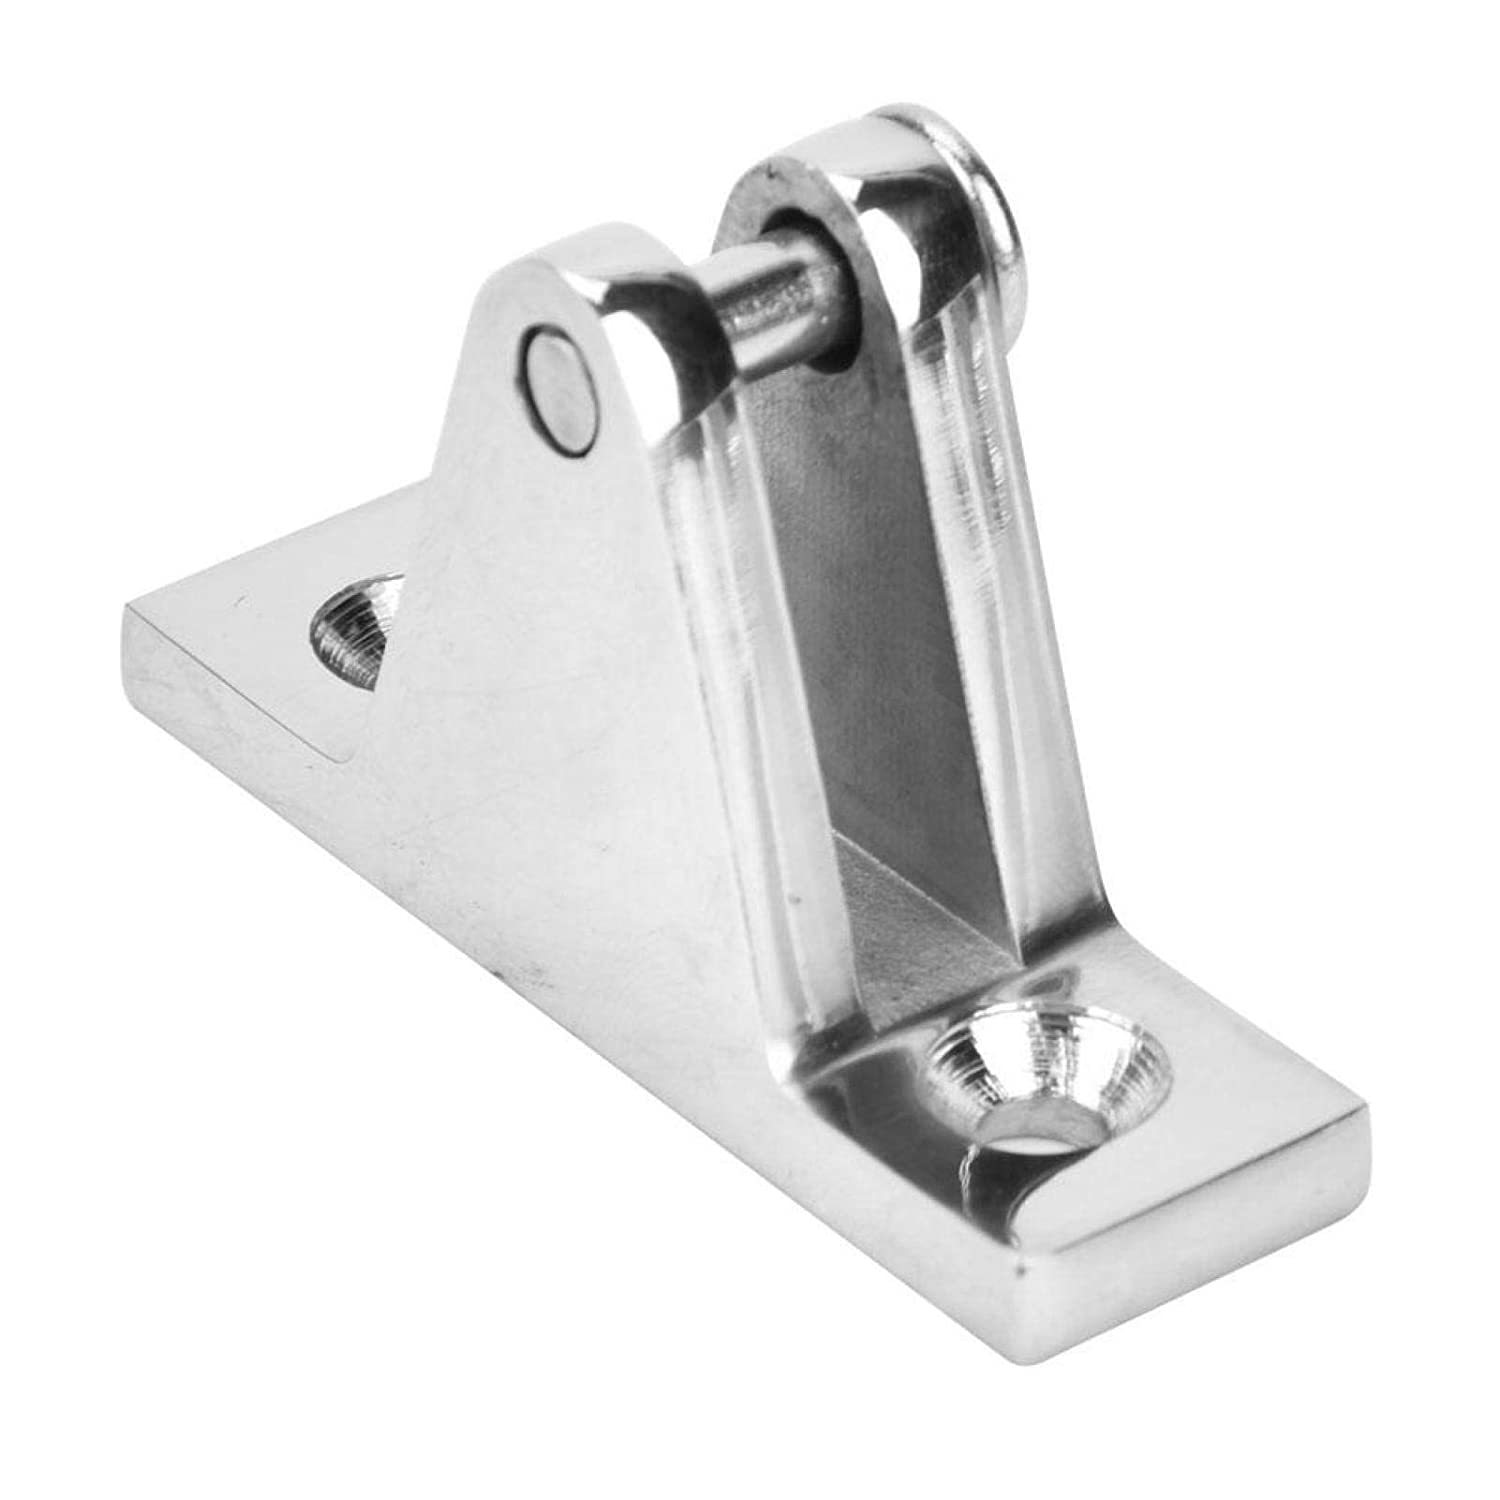 Ladieshow Recommendation Special Campaign Fine Polished Deck Hinge Steel Fitting Stainless Boat